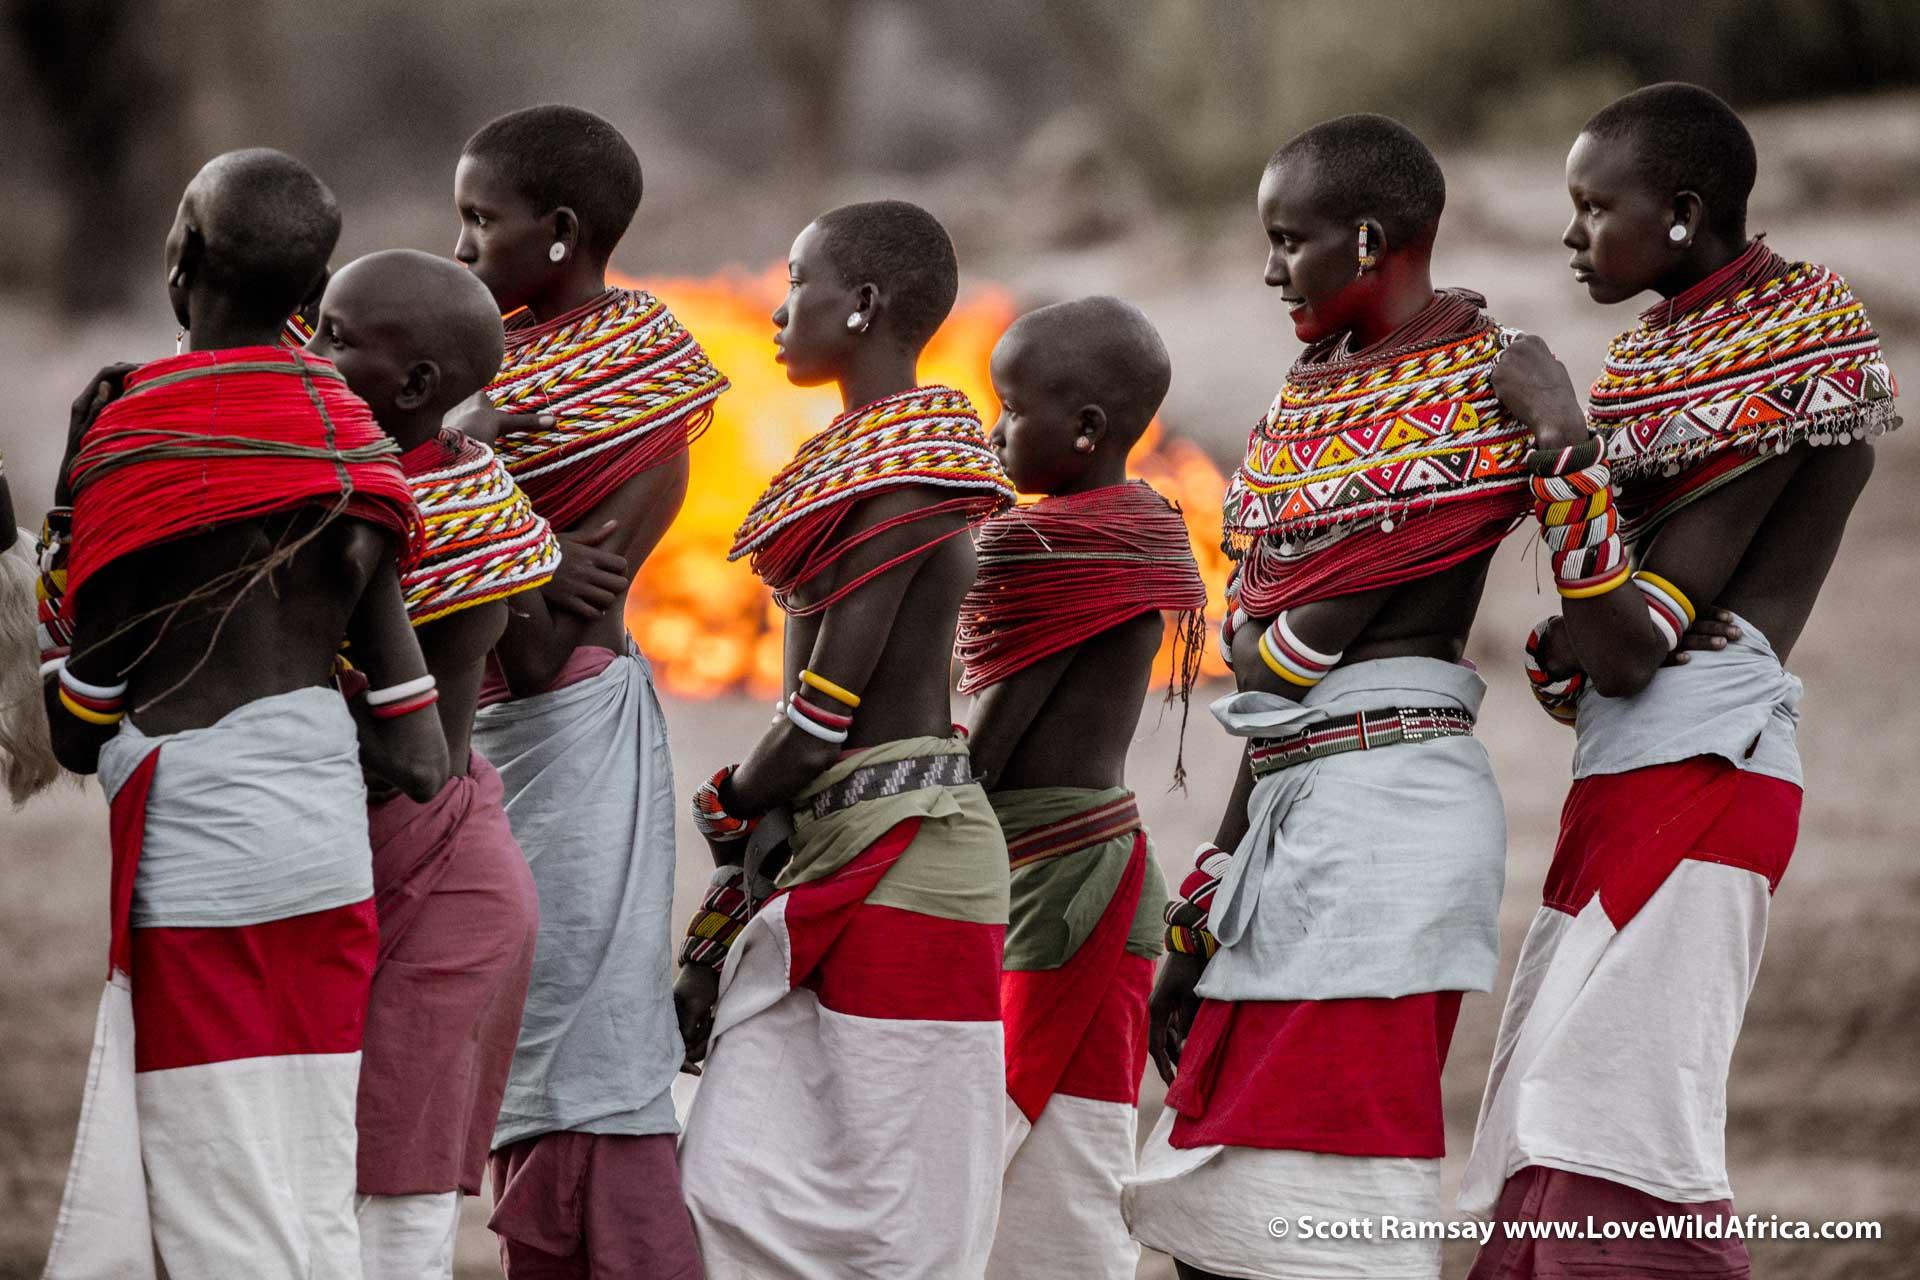 Young Samburu women admiring the moran dance...their tall, elegant frames are impossible to ignore.